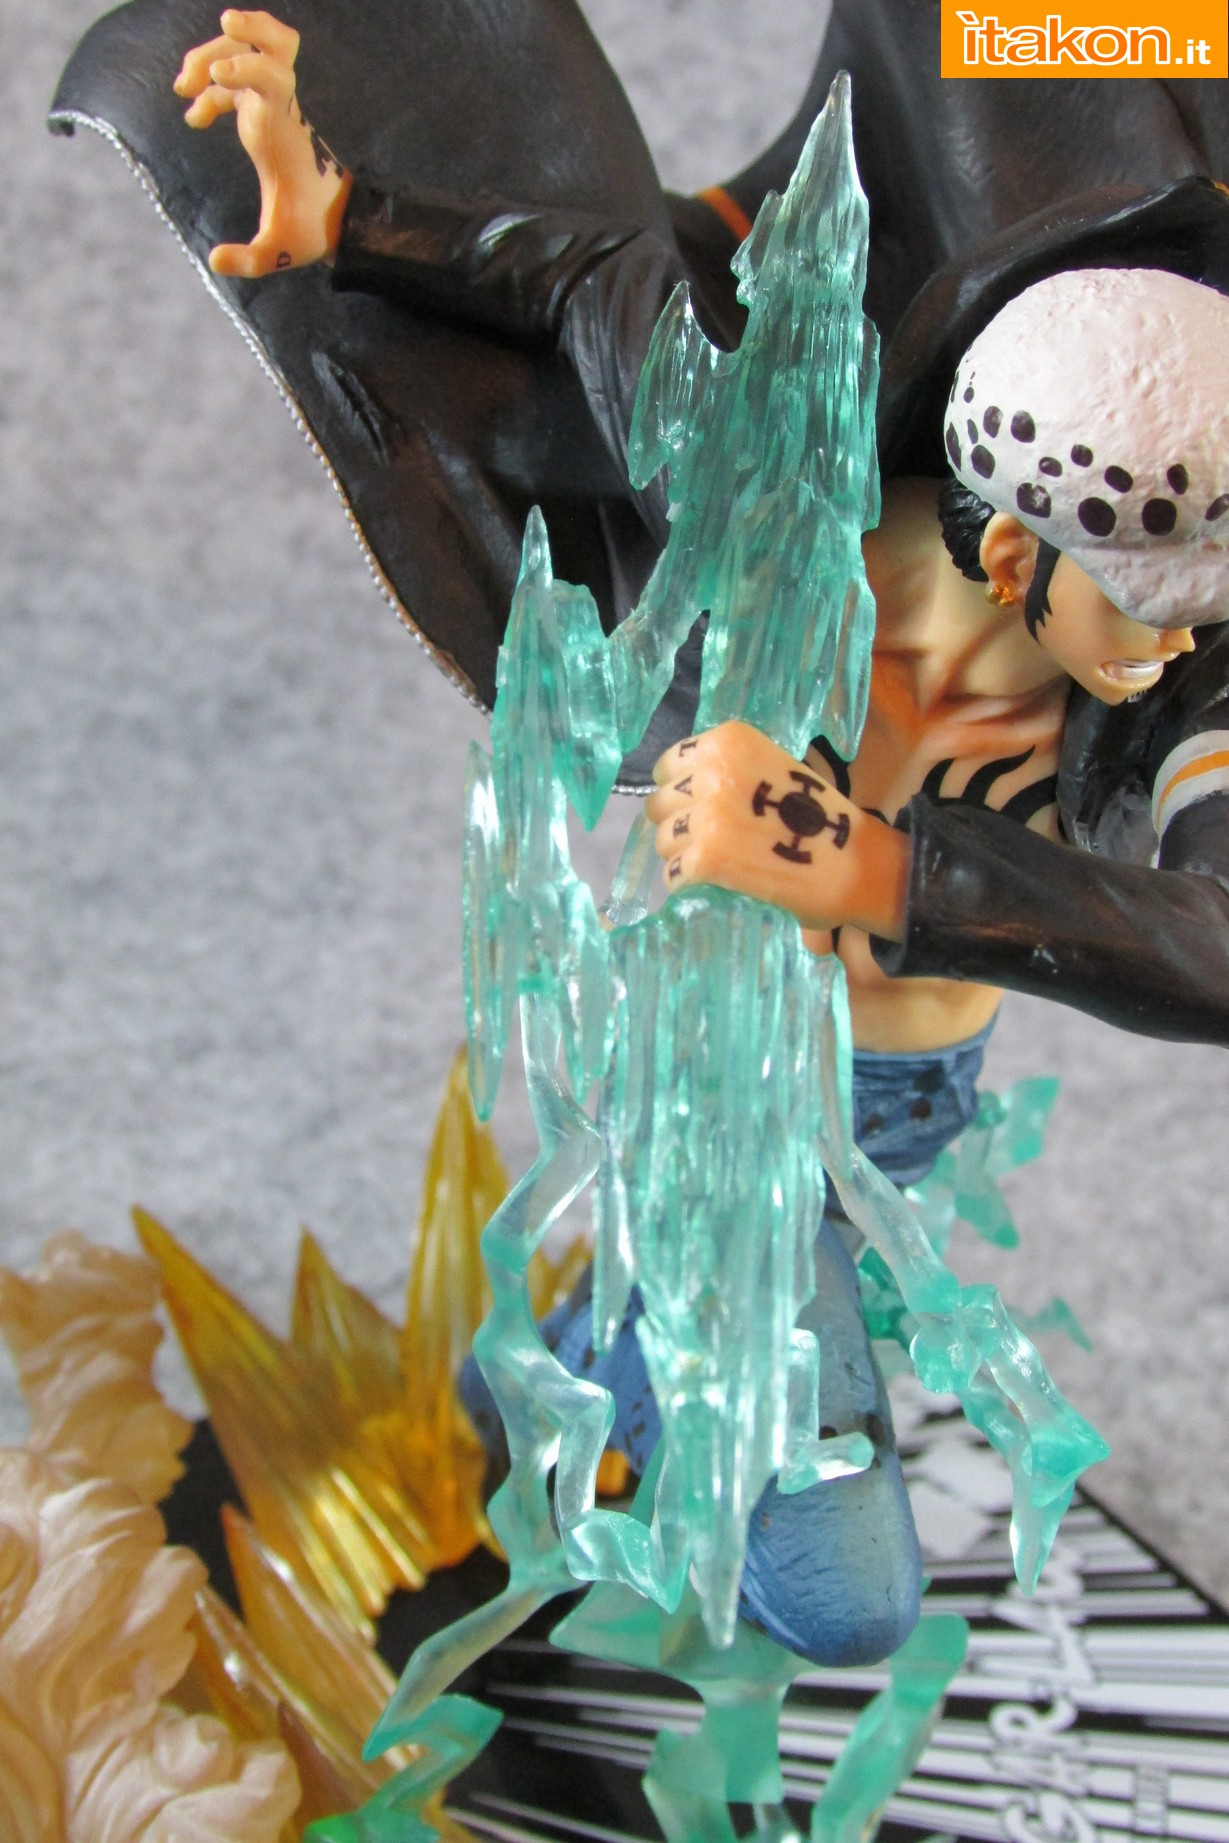 Link a One Piece Trafalgar Law Gamma Knife Figuarts ZERO Chou Gekisen Extra Battle Recensione Review Itakon.it 42